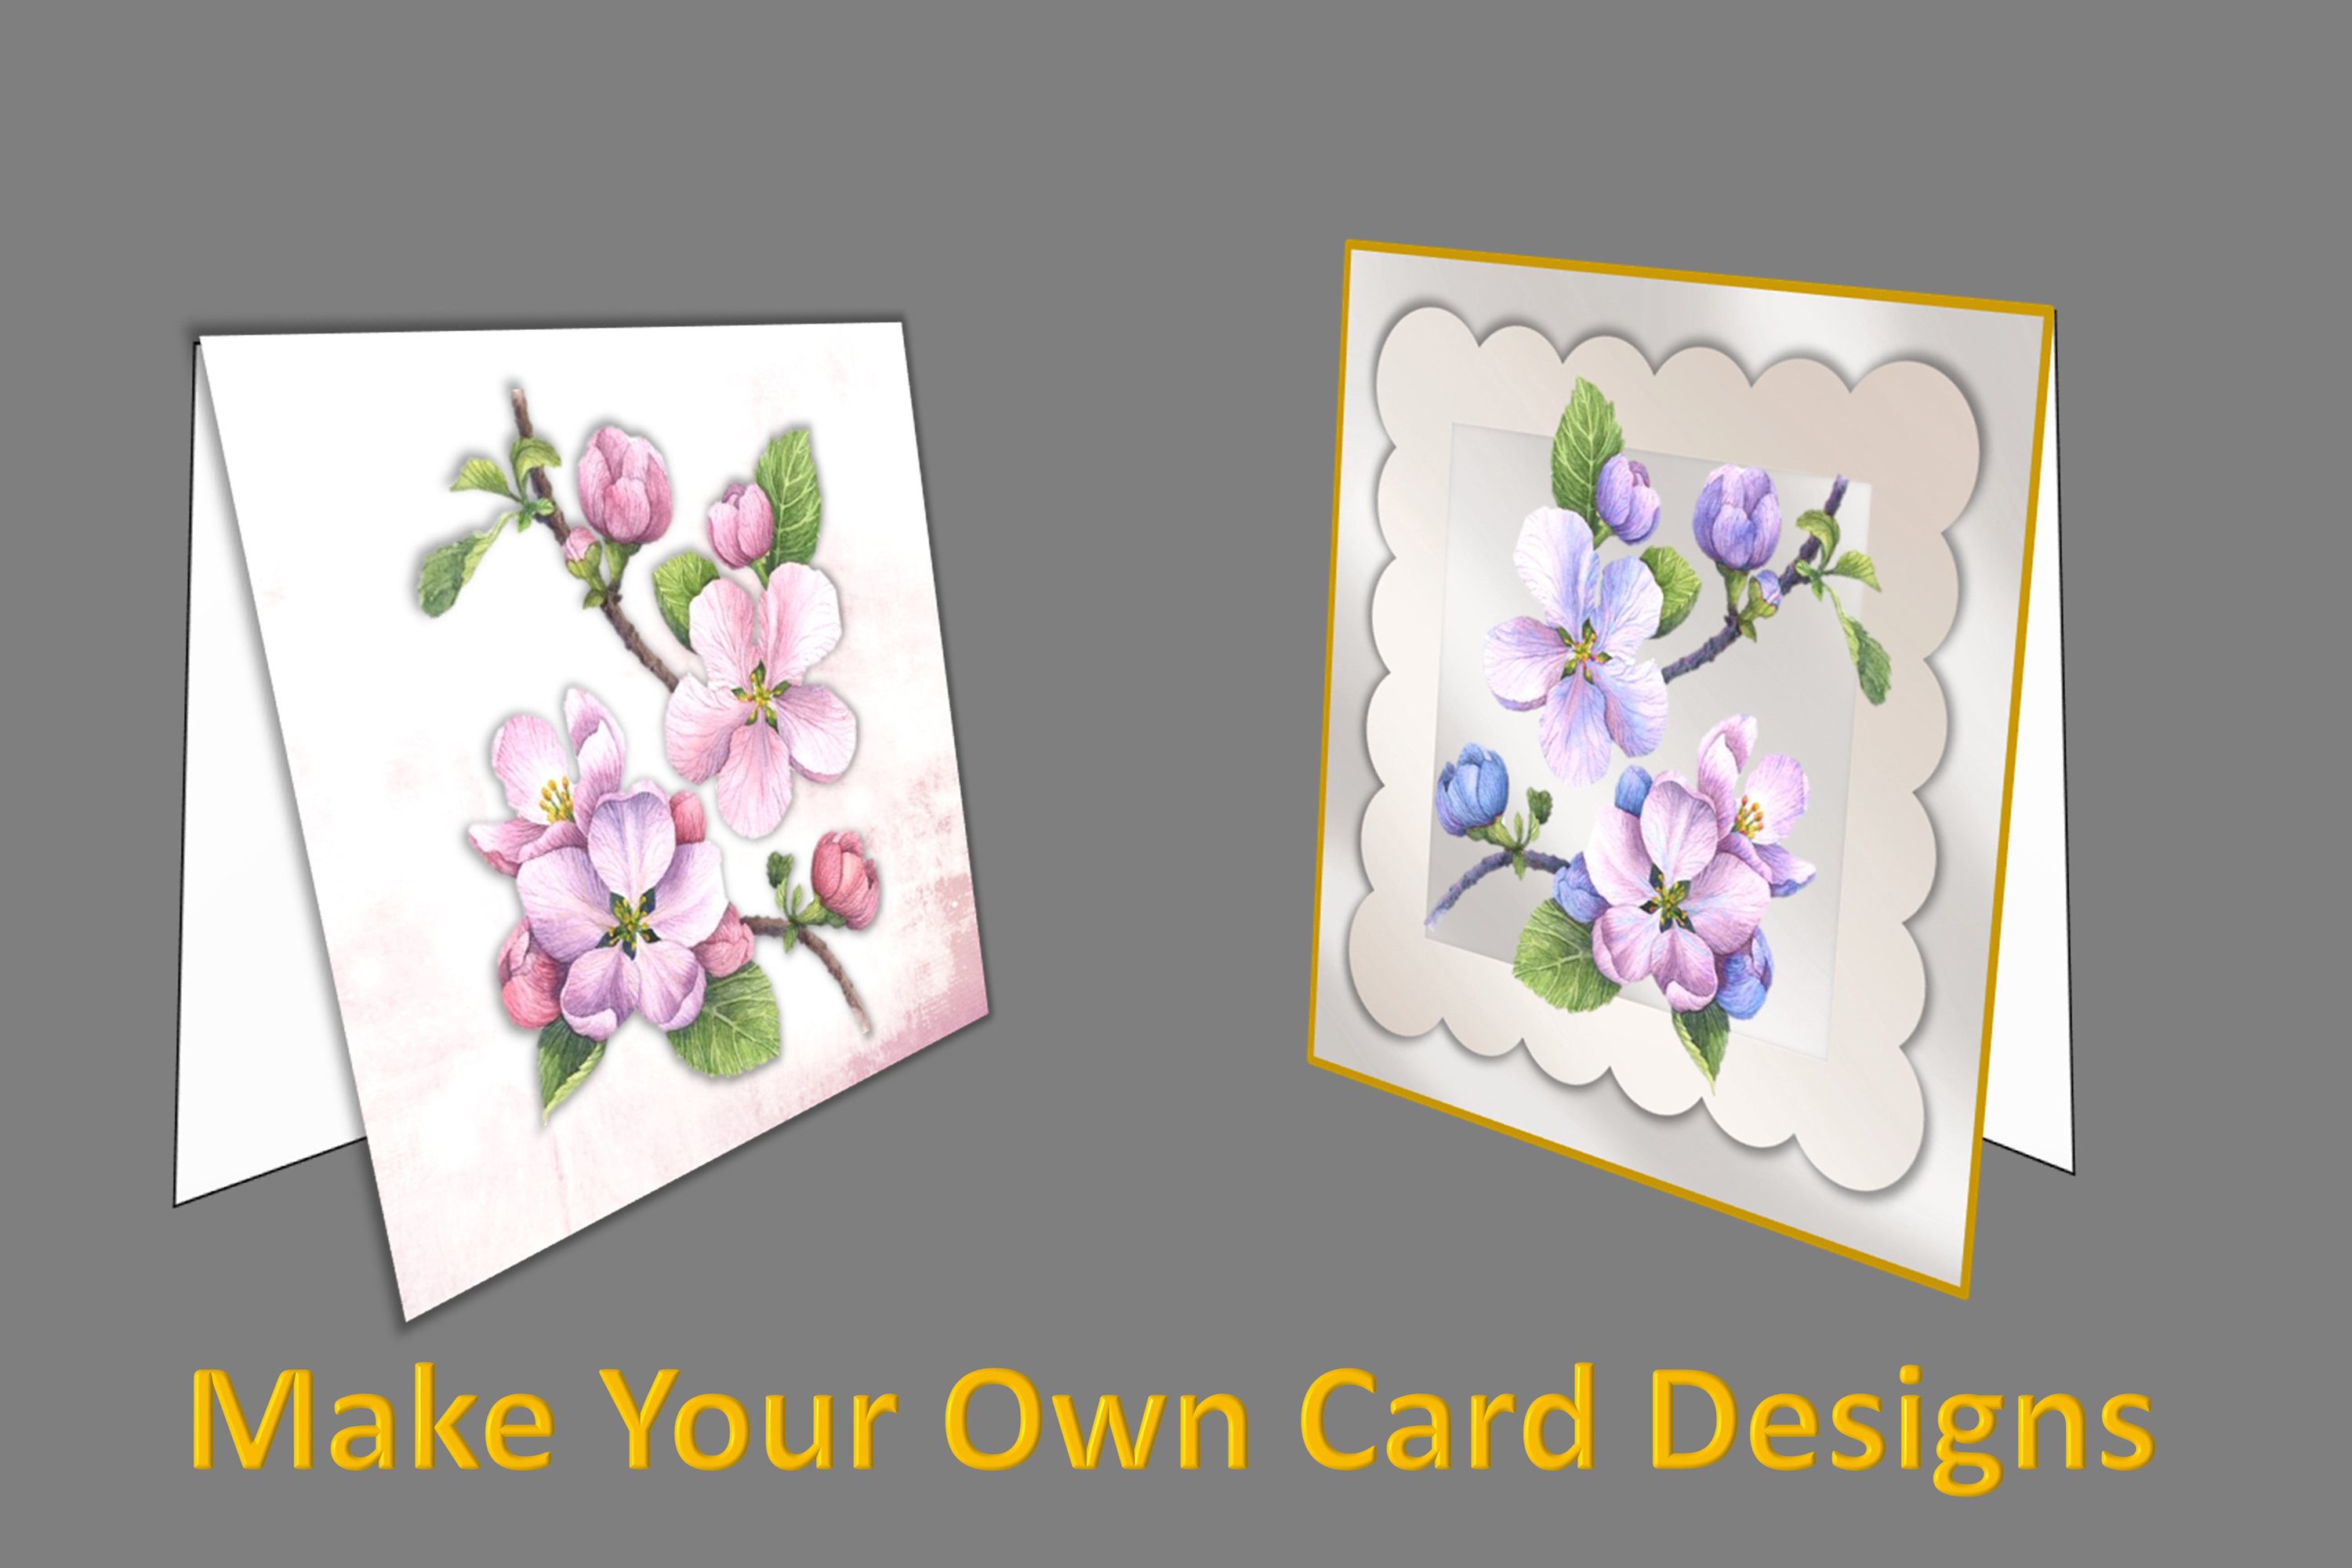 Woodland Blossom clipart bundle with card making kits CU example image 3